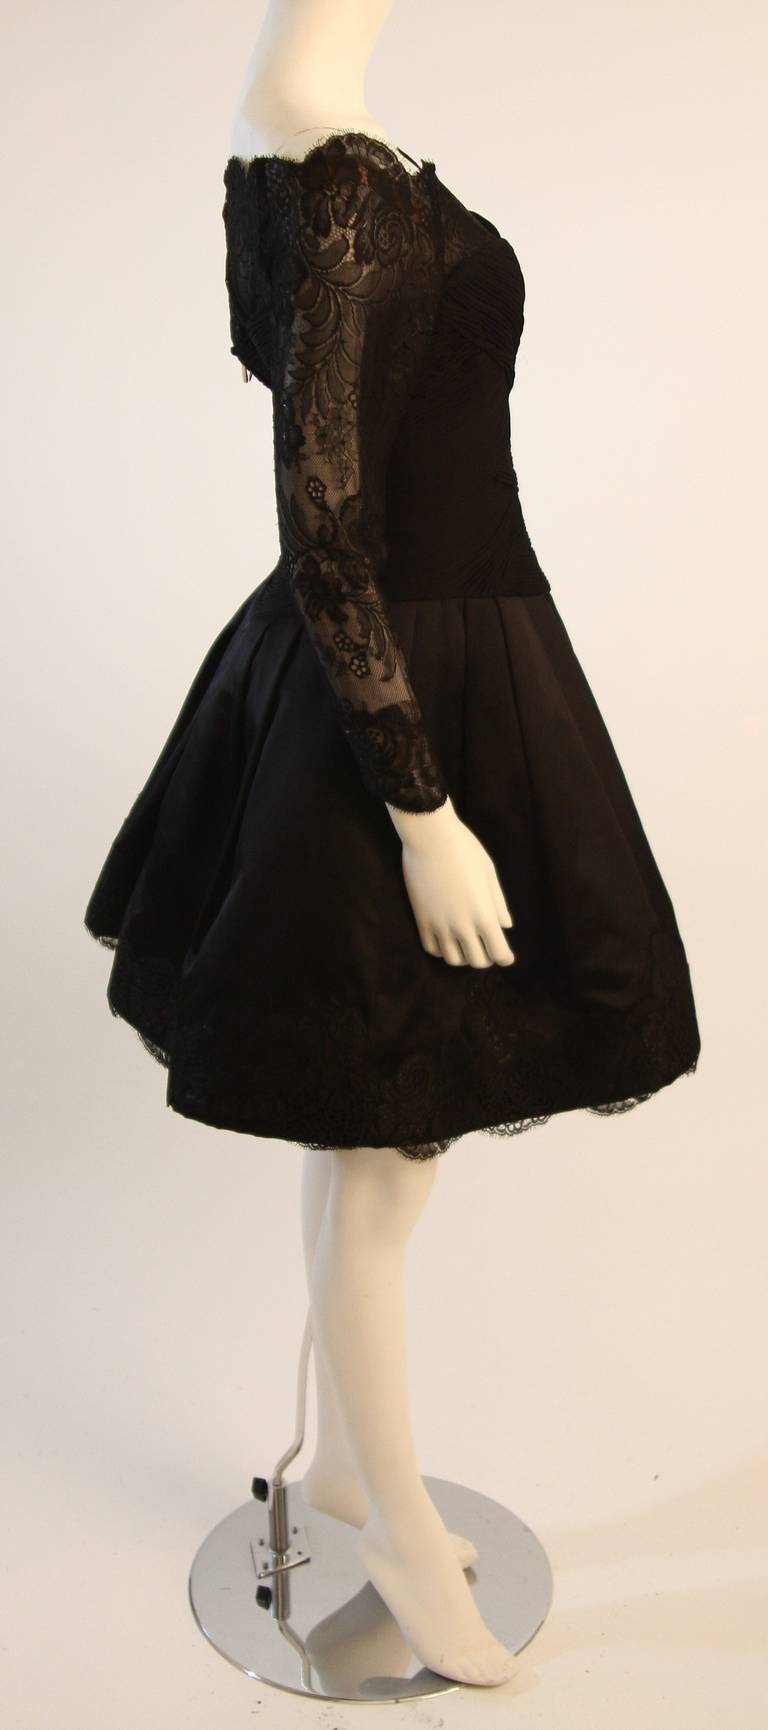 Vera Wang Black Off the Shoulder Silk Cocktail Dress with 3/4 Lace Sleeves 5